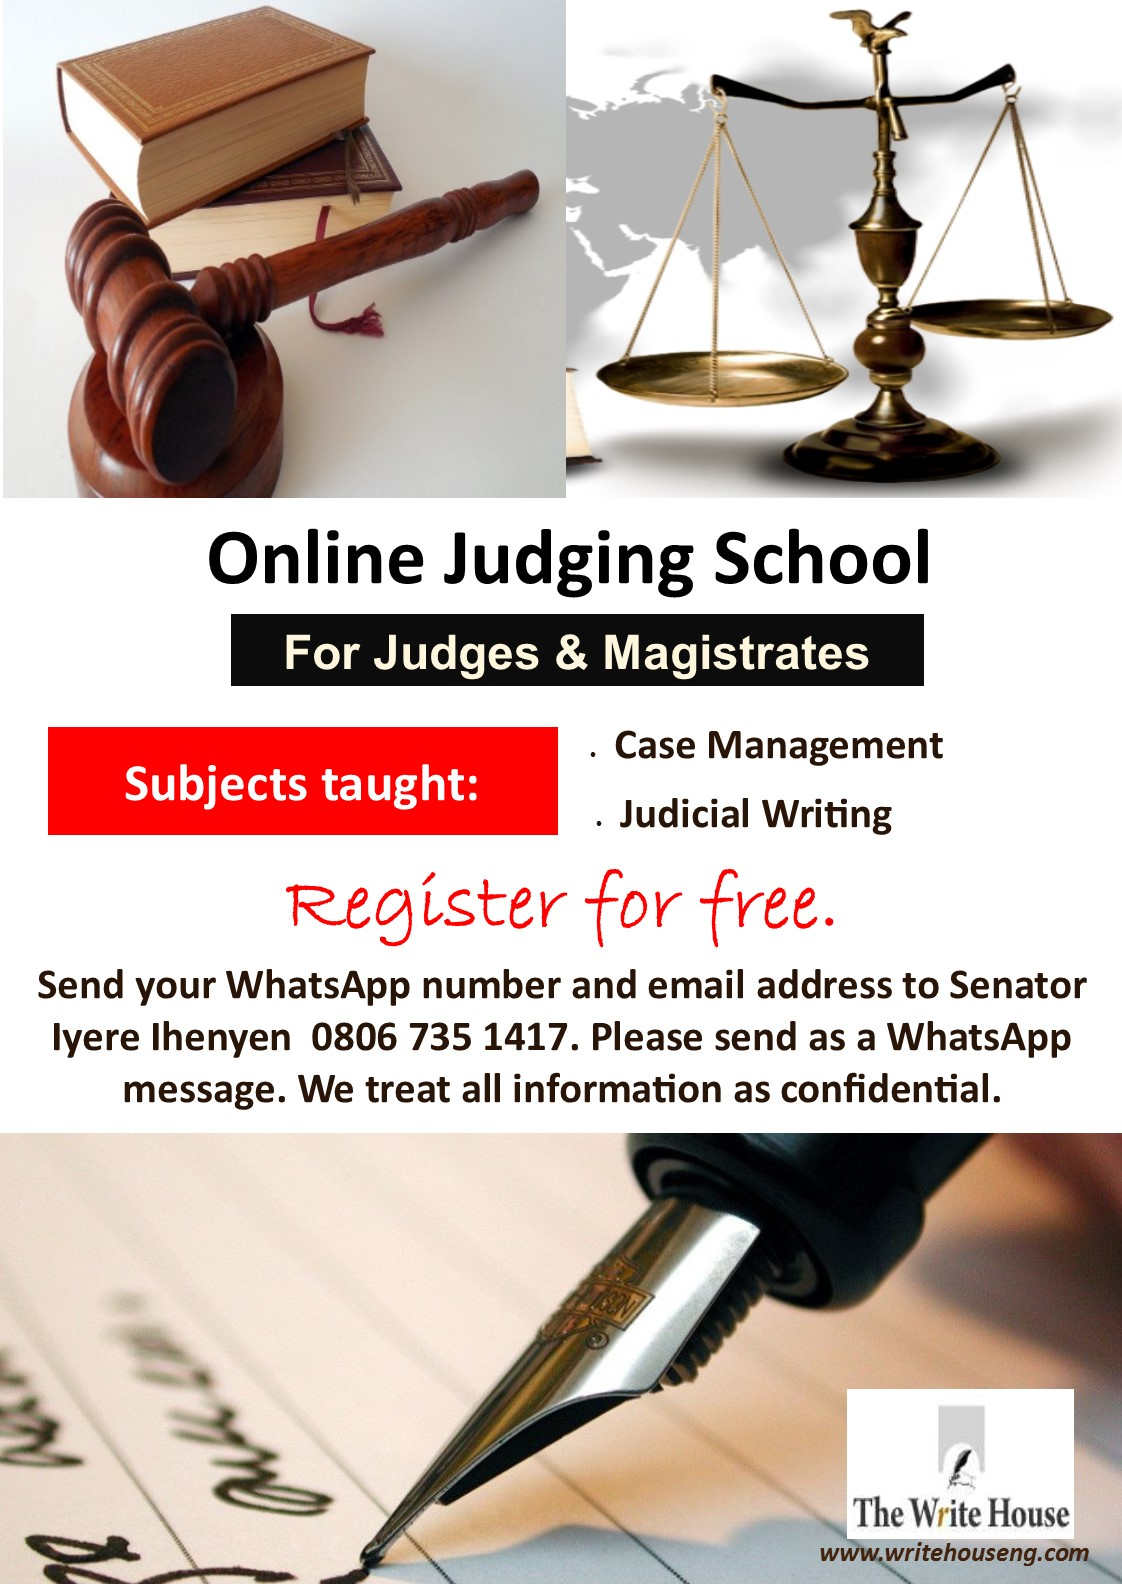 online judging school by the write house the write house online judging school is for judges and magistrates are you are a judge or magistrate do you want to have access to quality judicial writing lectures